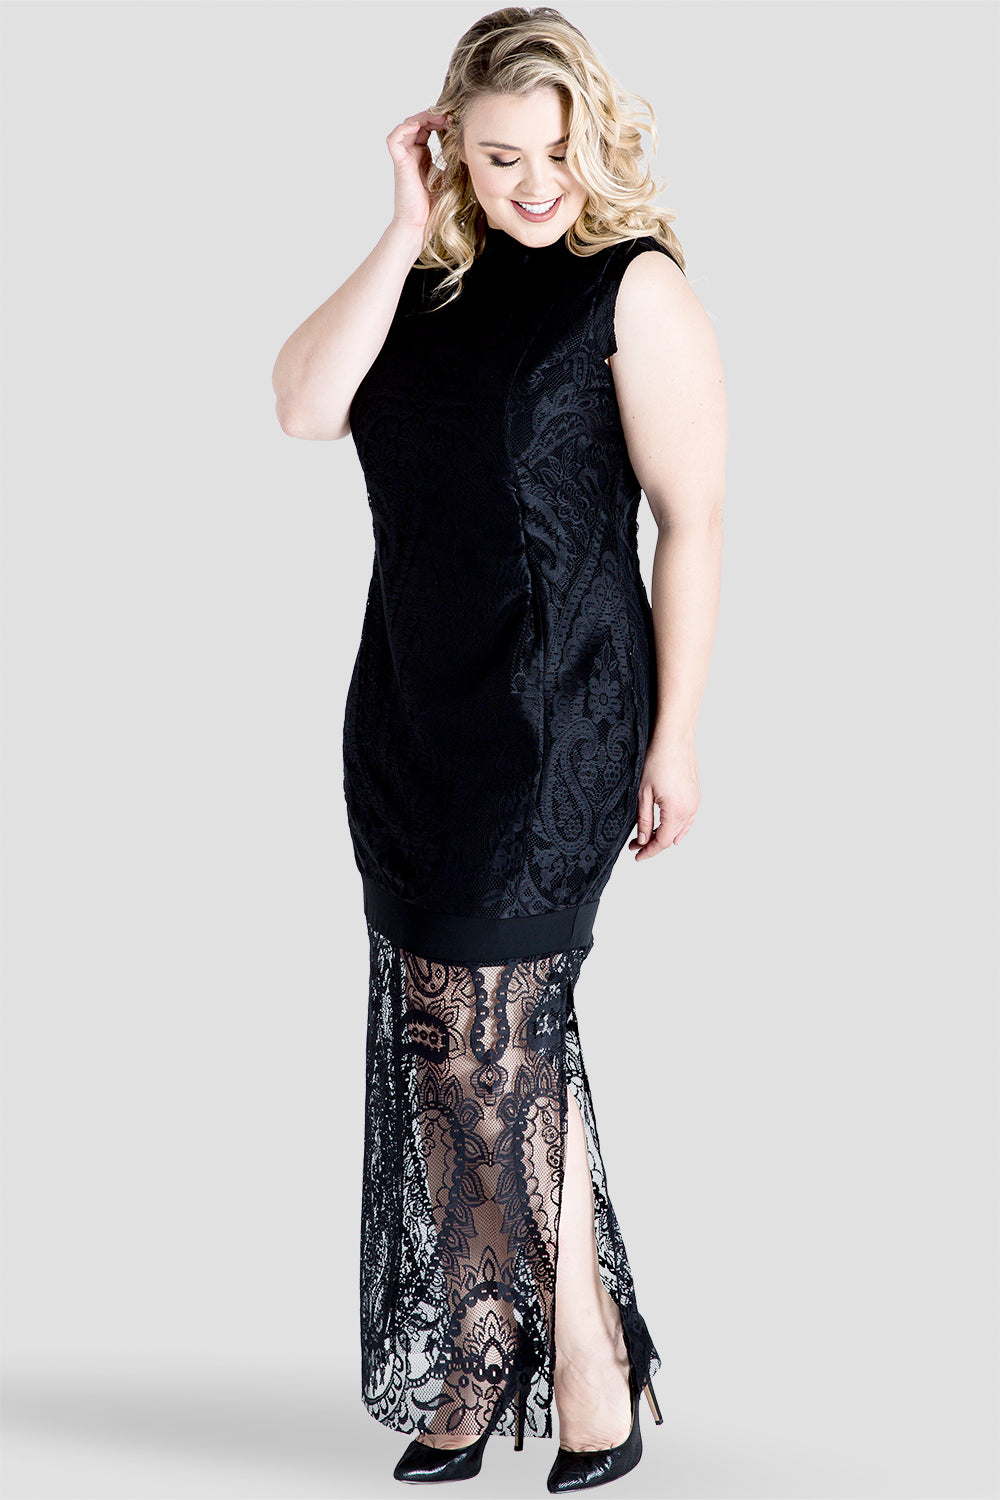 Plus Size Clover Sleeveless Black Lace Maxi Dress W Mock Turtle Neck